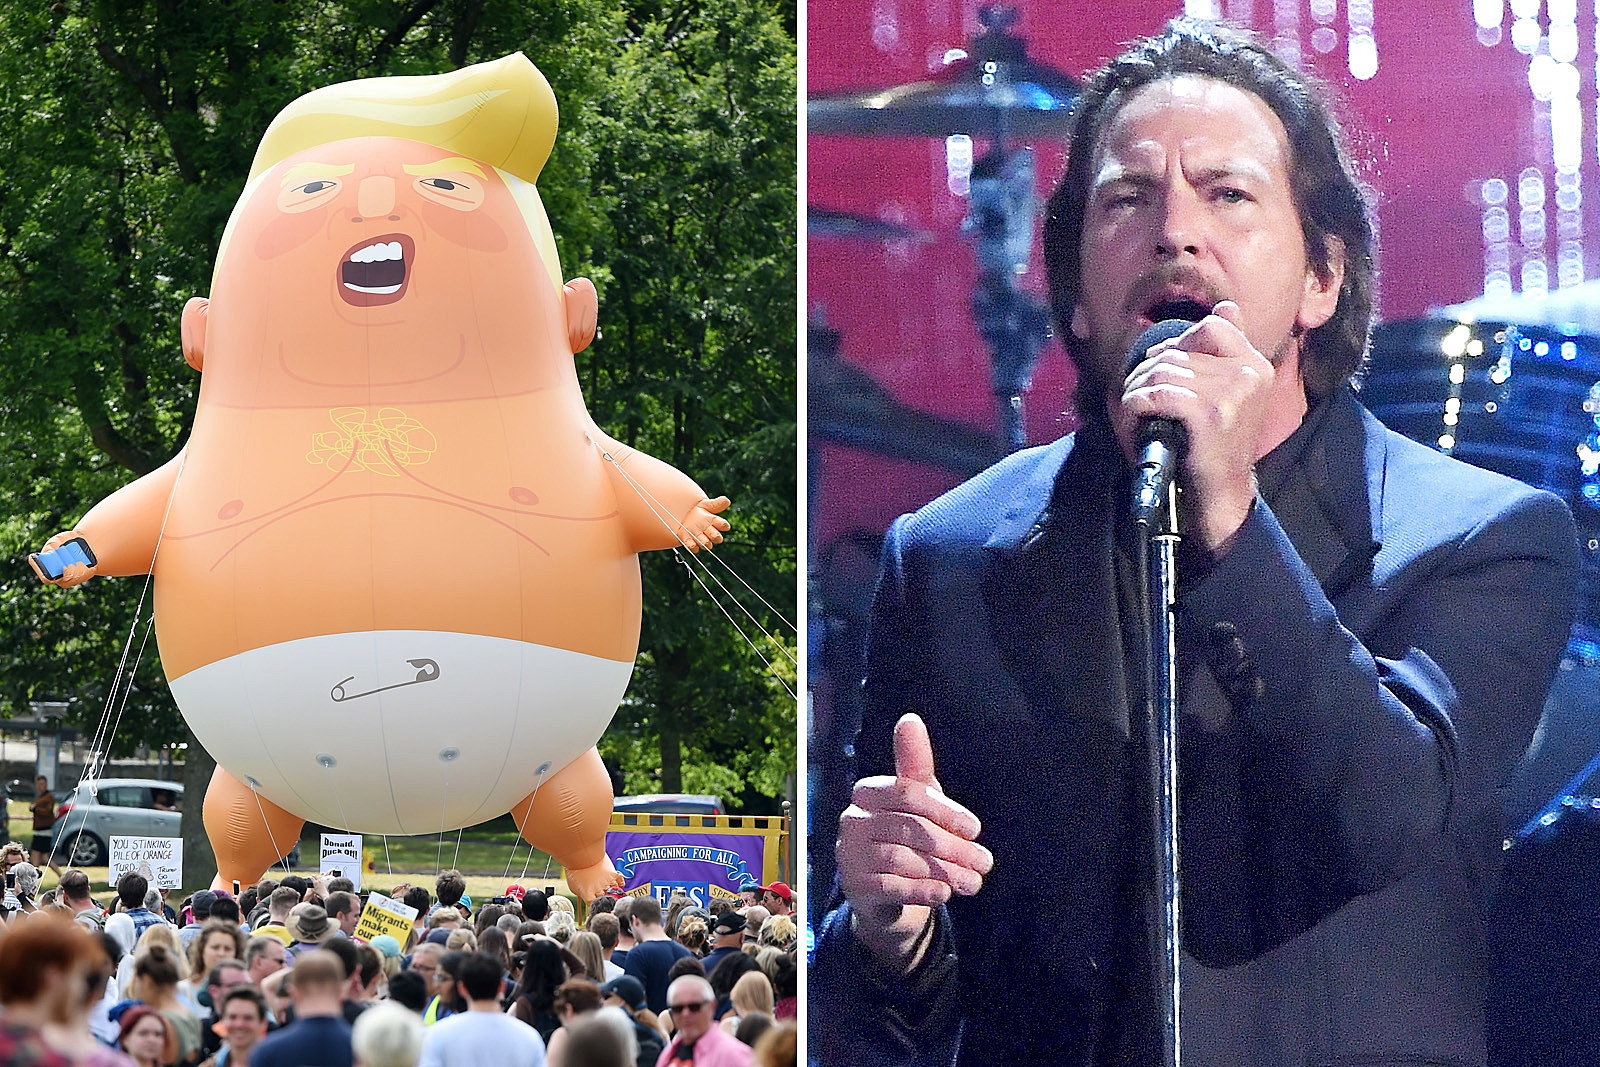 Pearl Jam Use Trump Baby Balloon at London Show